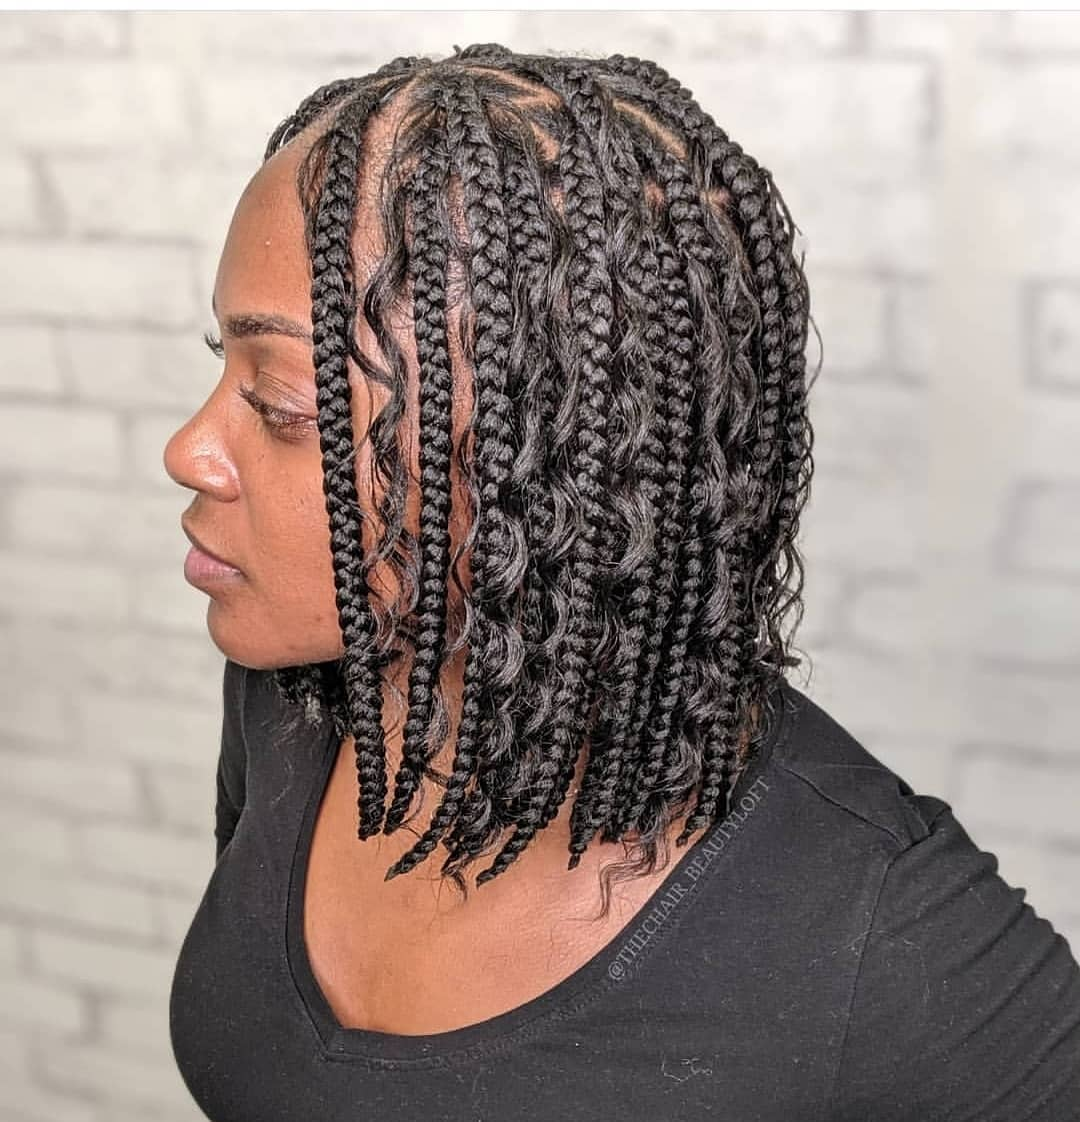 2020 Braided Hairstyles : Glorious Latest Hair Trends